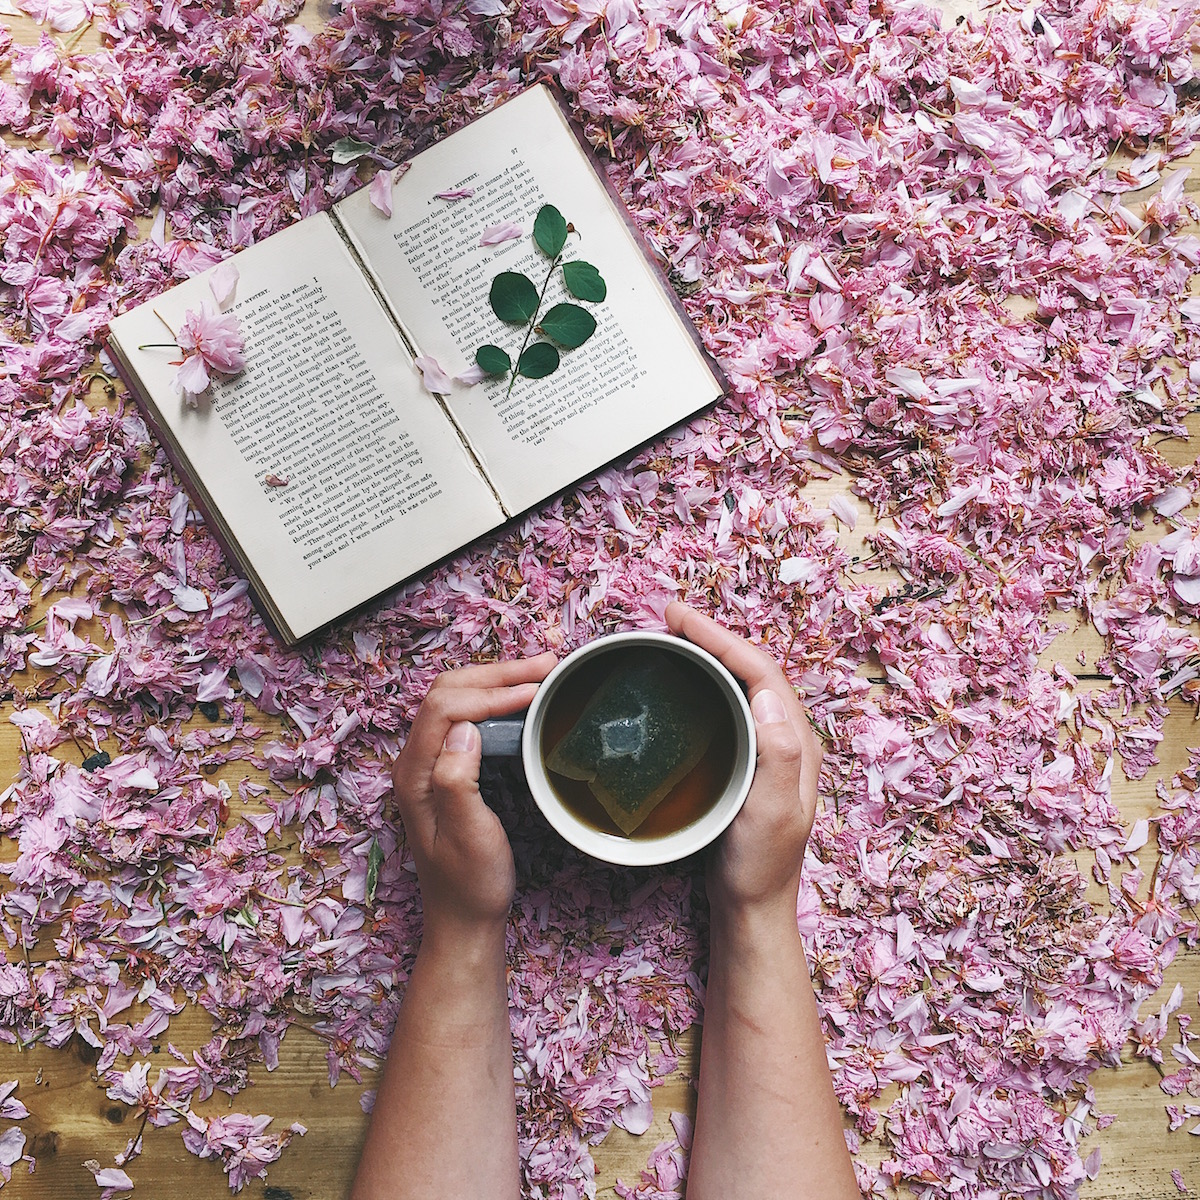 Ideas for Instagram photo prop ideas & hashtags - petal, hot drinks and flowers